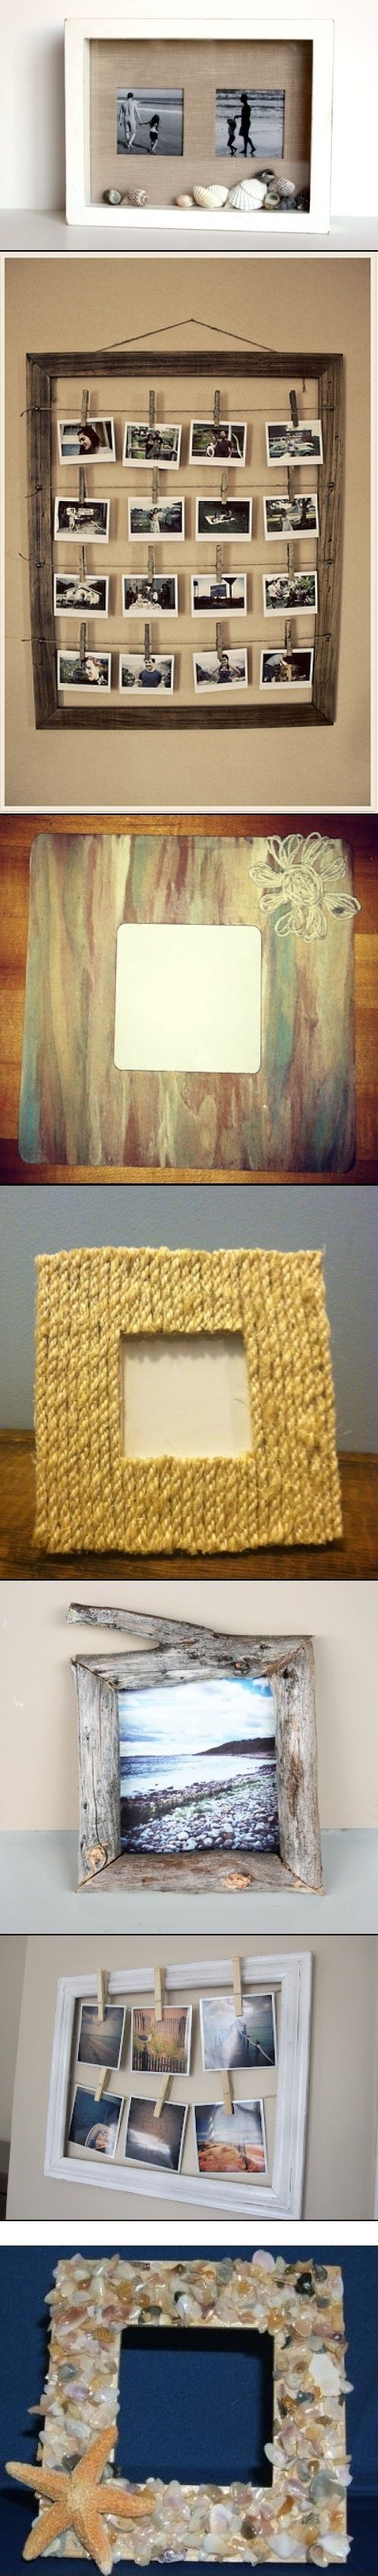 DIY Photo Frames ideas